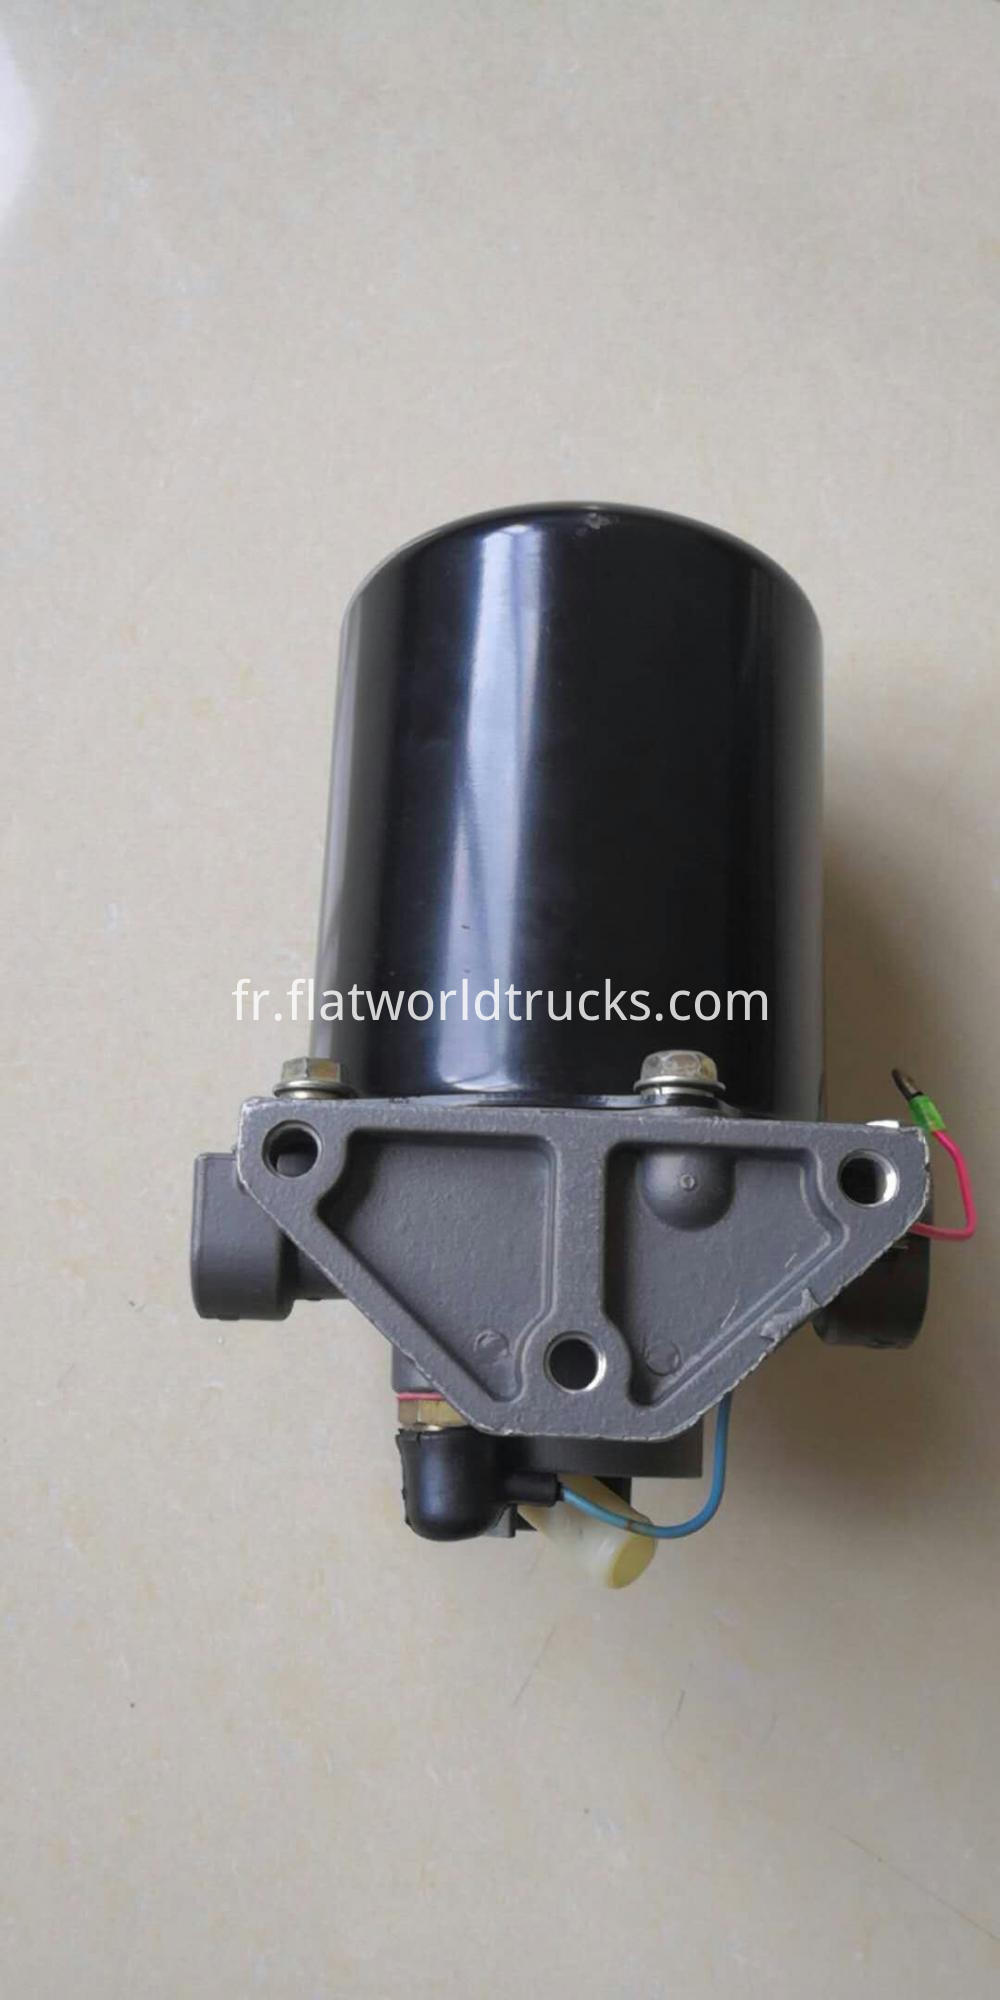 DR 41 AIR DRYER FOR NISSAN TRUCKS